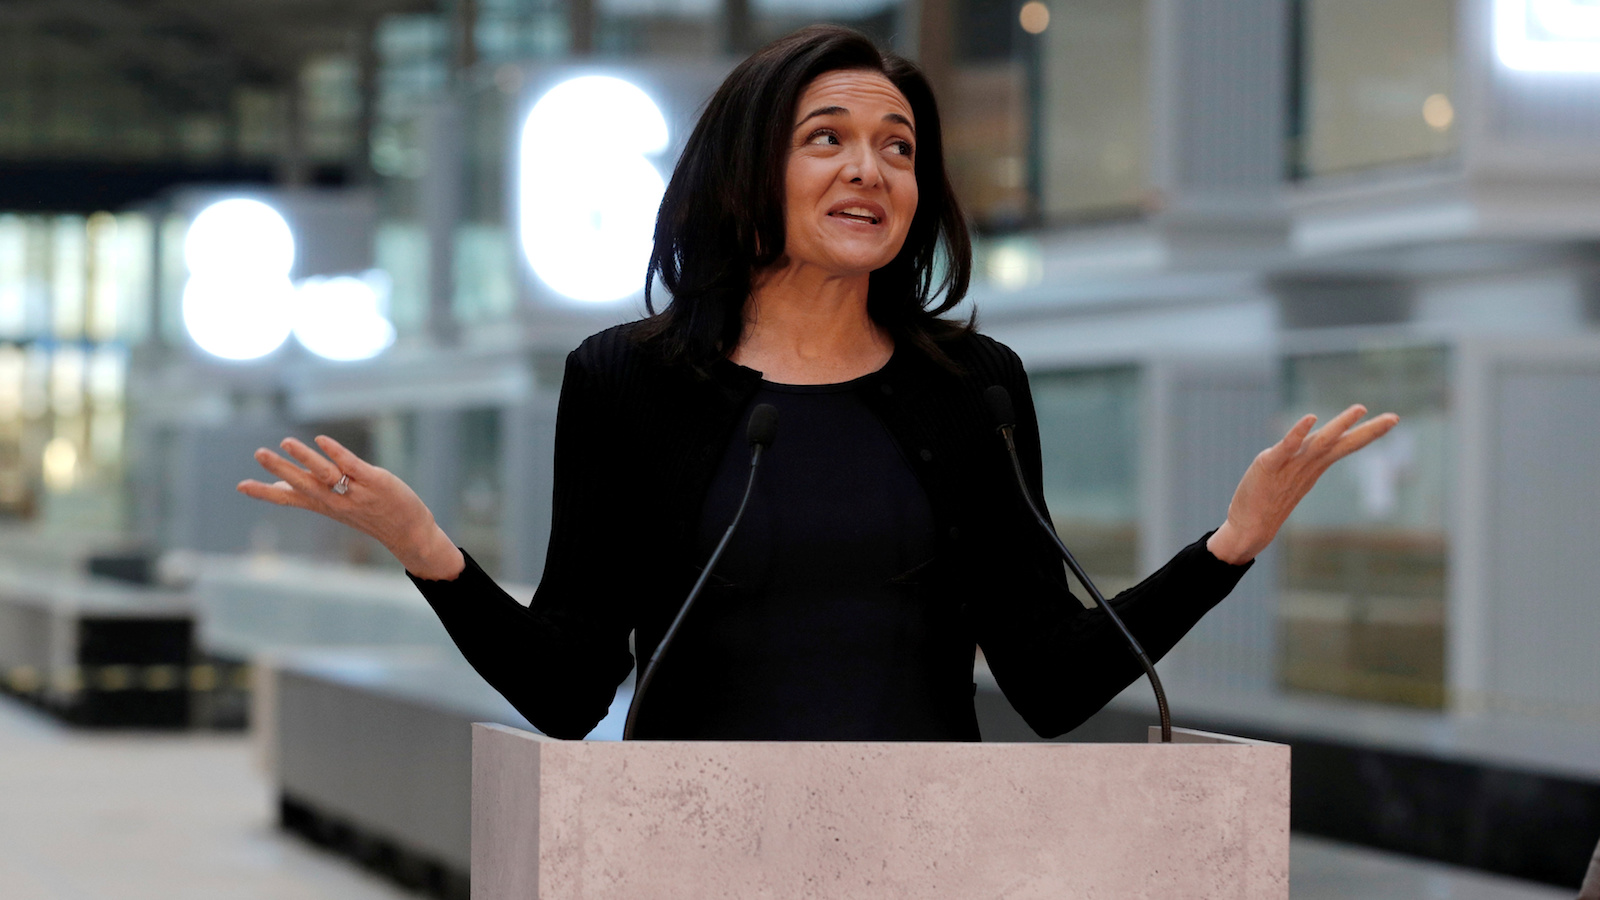 Sheryl Sandberg, Chief Operating Officer of Facebook, delivers a speech during a visit in Paris, France, January 17, 2017, at a start-up companies gathering at Paris' Station F site as the company tries to head off tougher regulation by Germany. REUTERS/Philippe Wojazer TPX IMAGES OF THE DAY - RC1BC24104F0